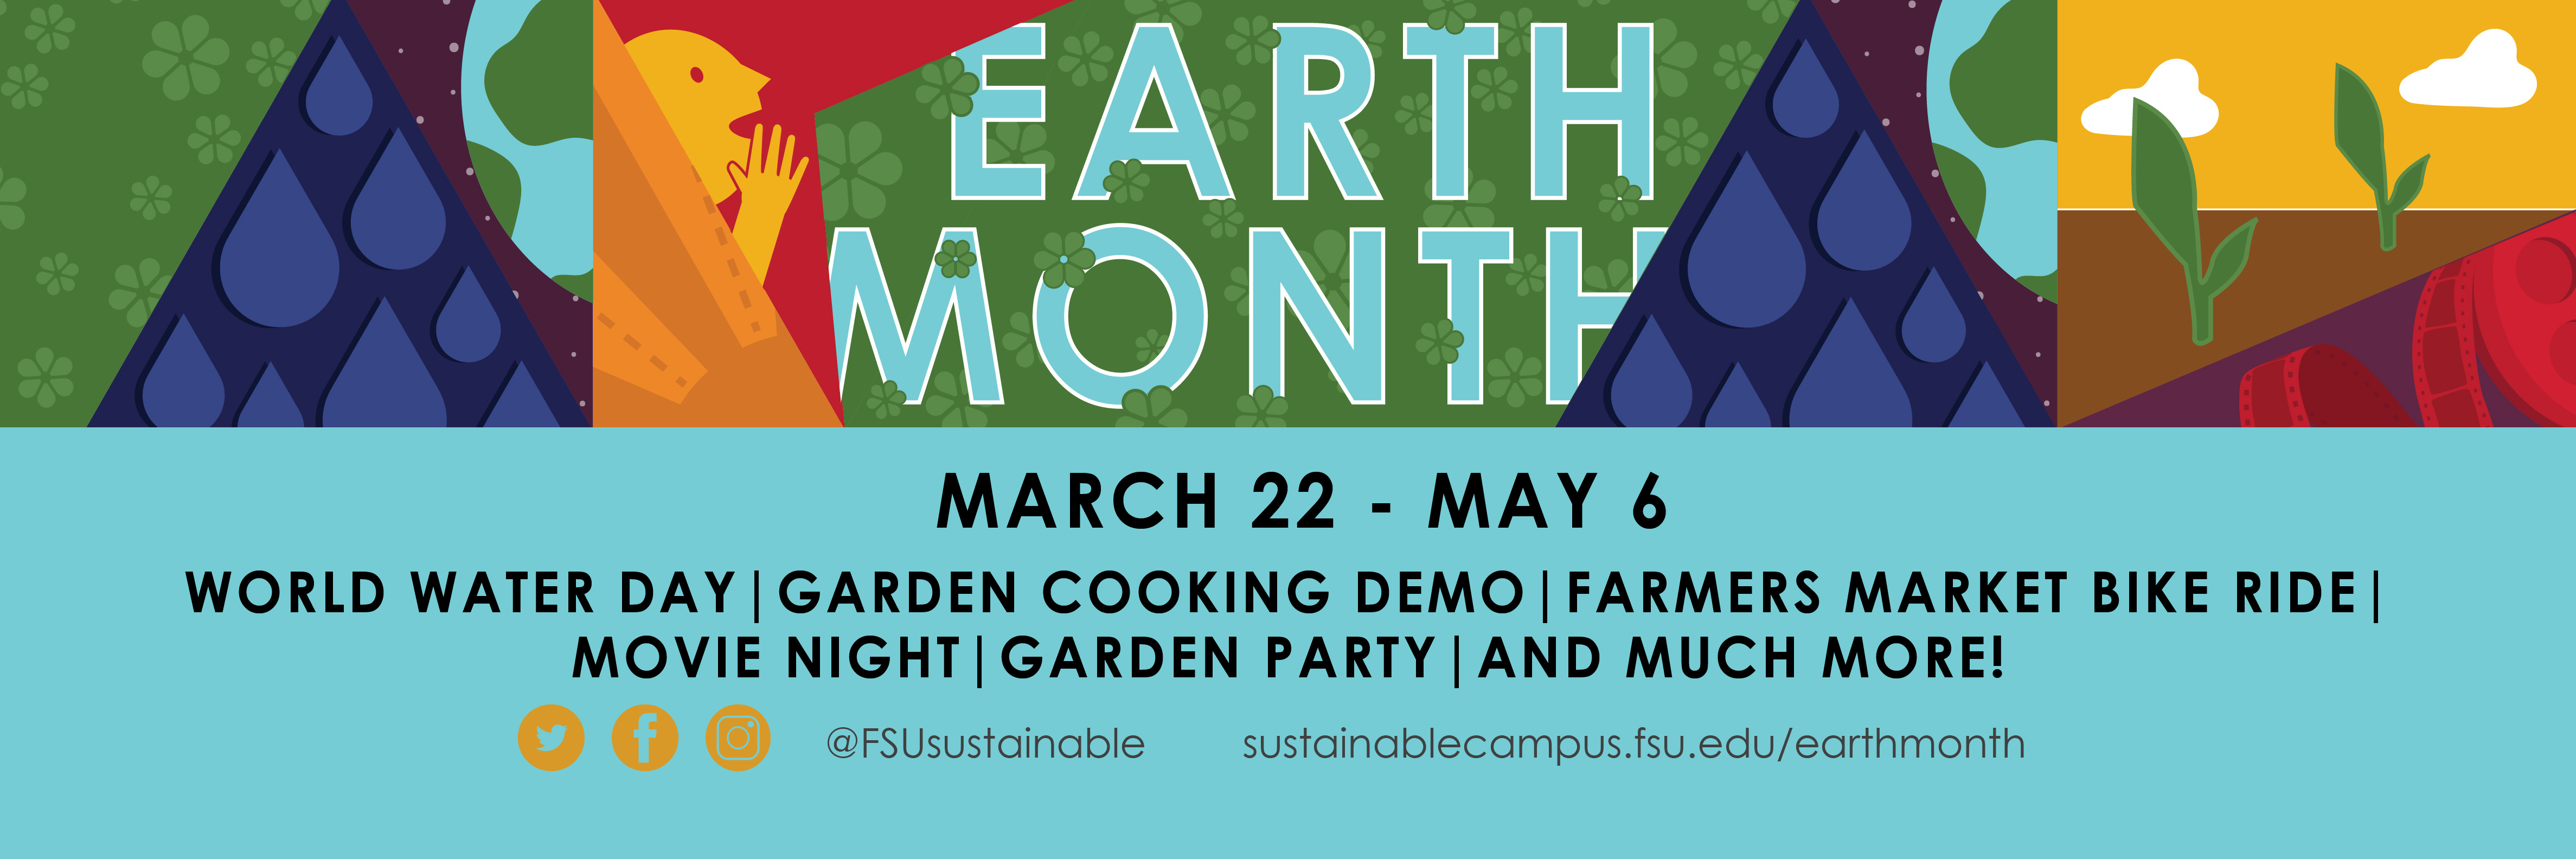 earth month website banner-01.jpg